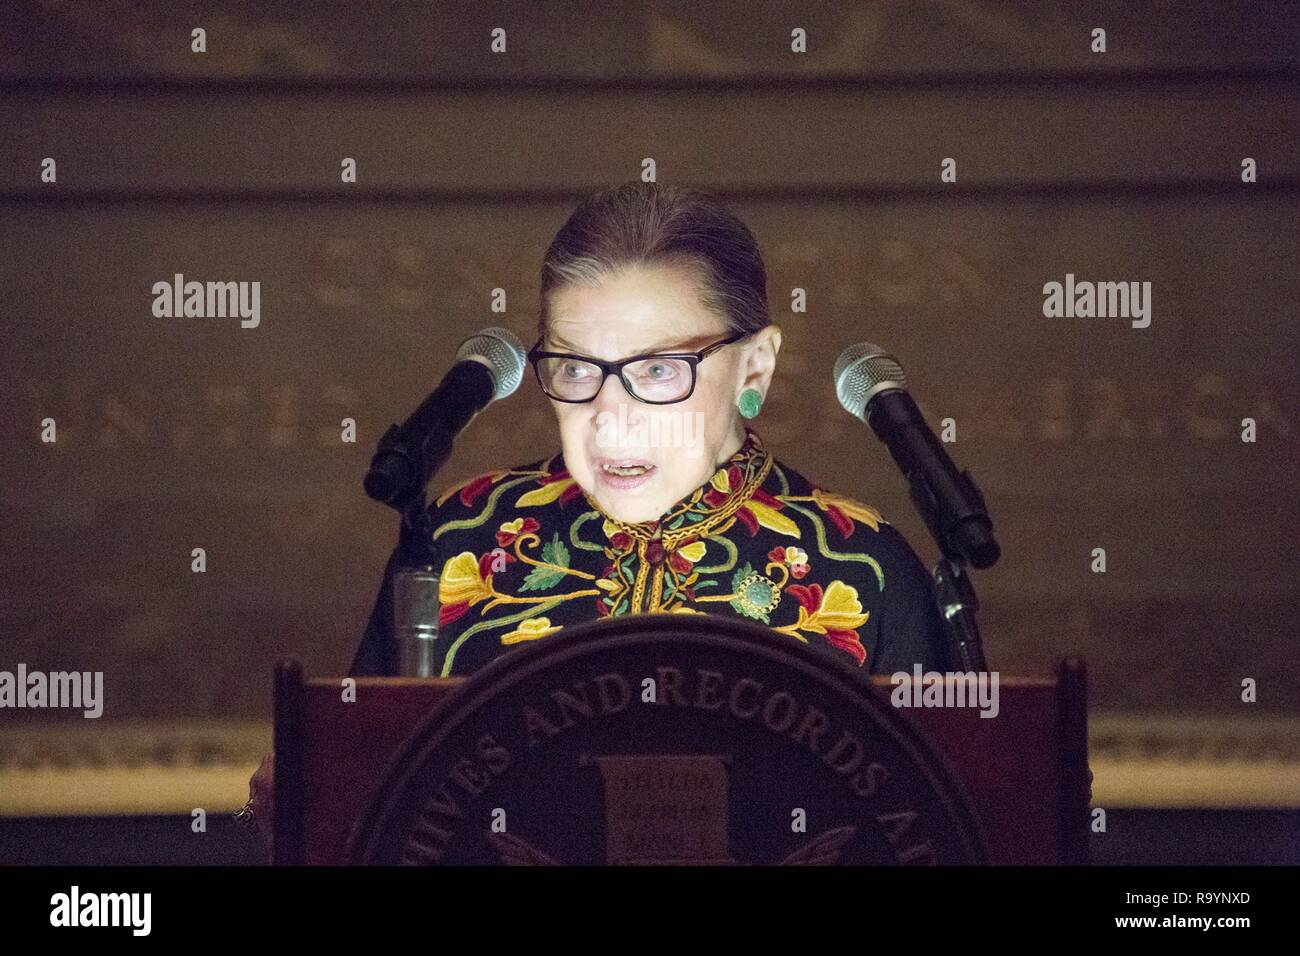 U.S Supreme Court Justice Ruth Bader Ginsburg speaks during an immigration Naturalization Ceremony on Bill of Rights Day at the National Archives December 14, 2018 in Washington, D.C. - Stock Image